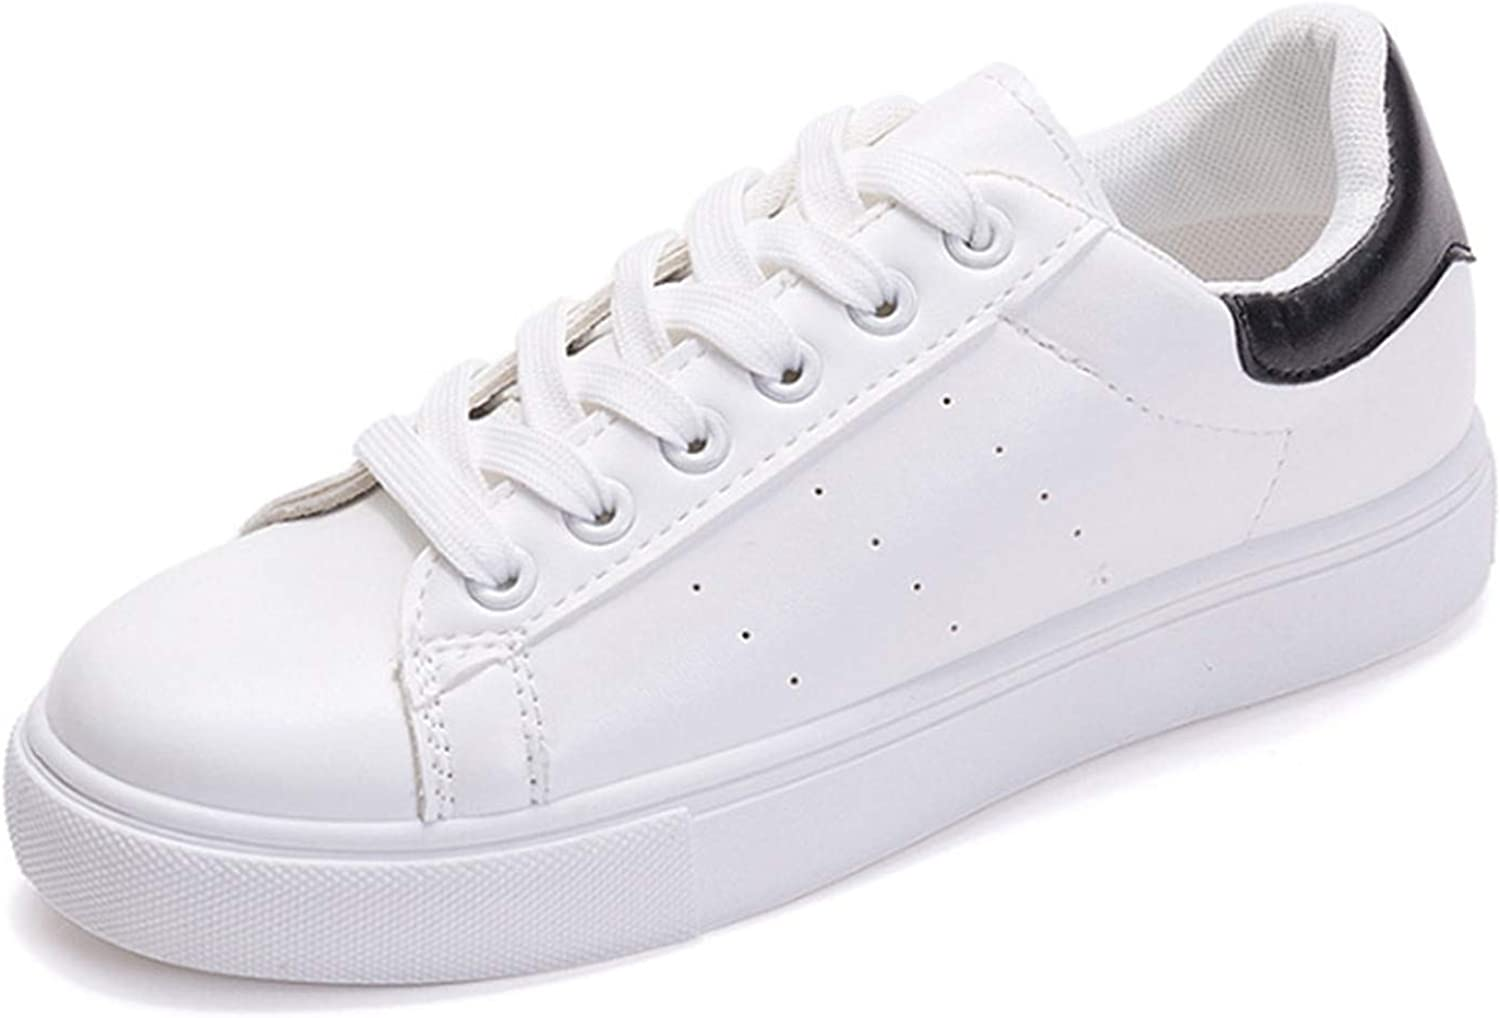 Women White shoes Flat Casual Vulcanized shoes Lace-Up Autumn Sneakers Platform Black 5